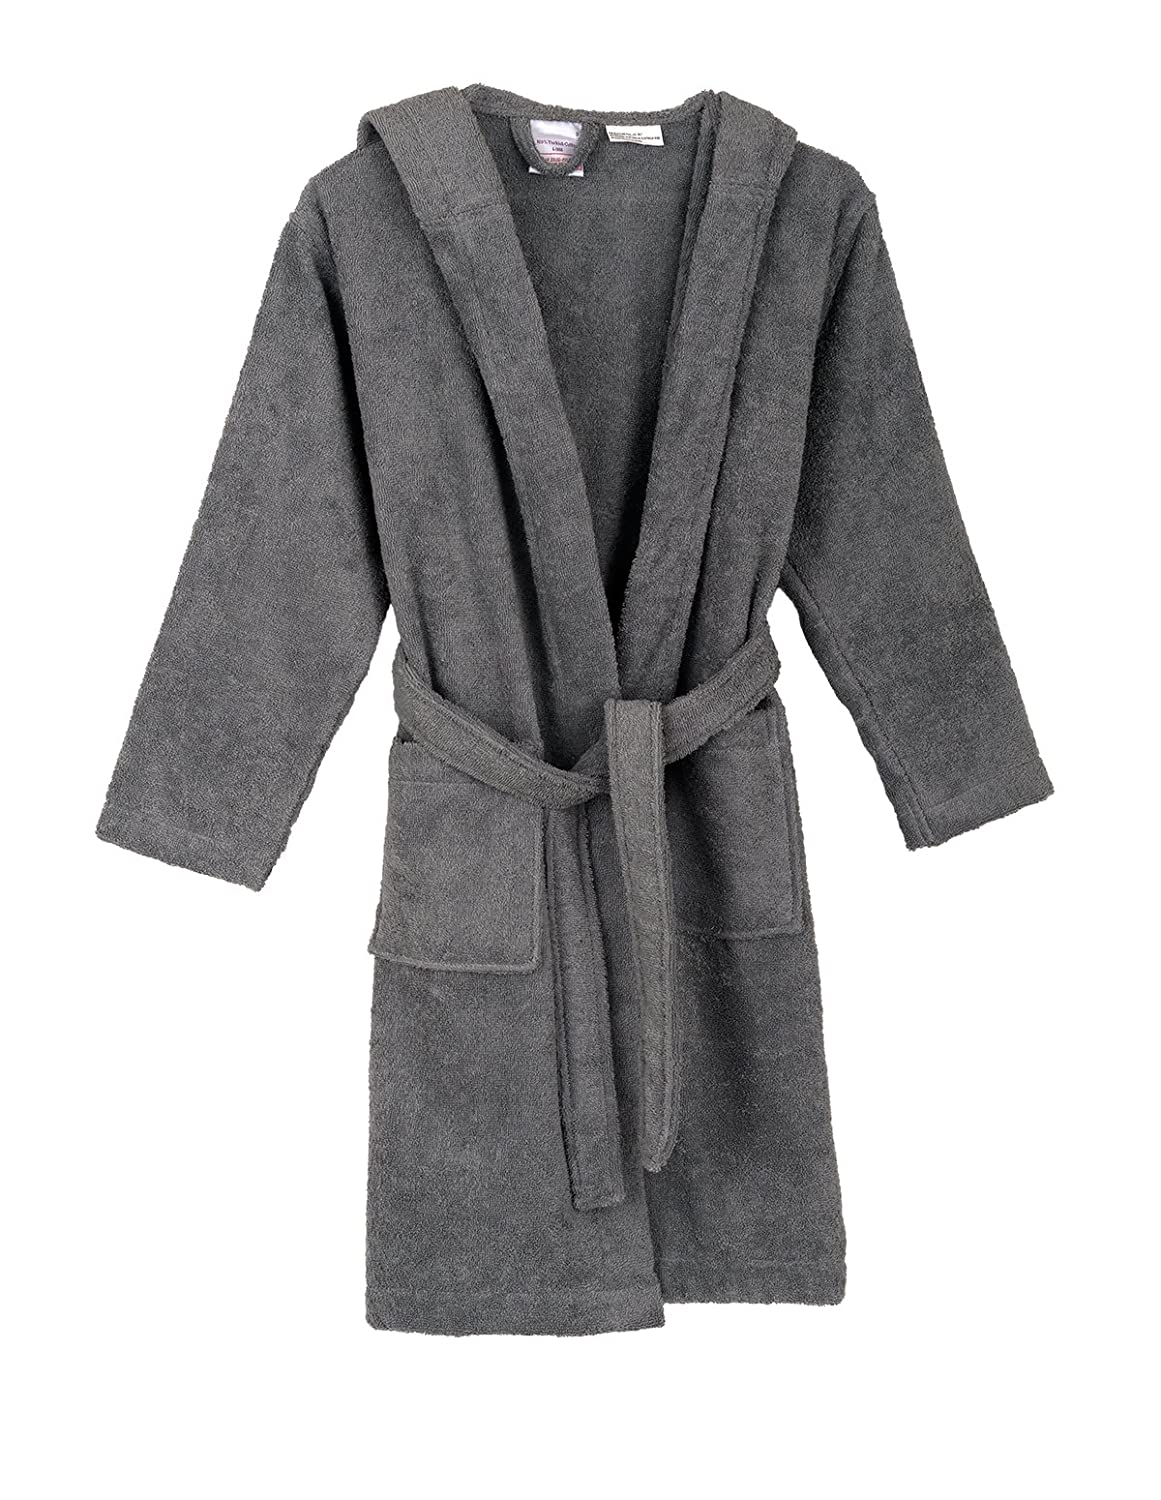 TowelSelections Boys Robe Kids Hooded Cotton Terry Bathrobe Made in Turkey